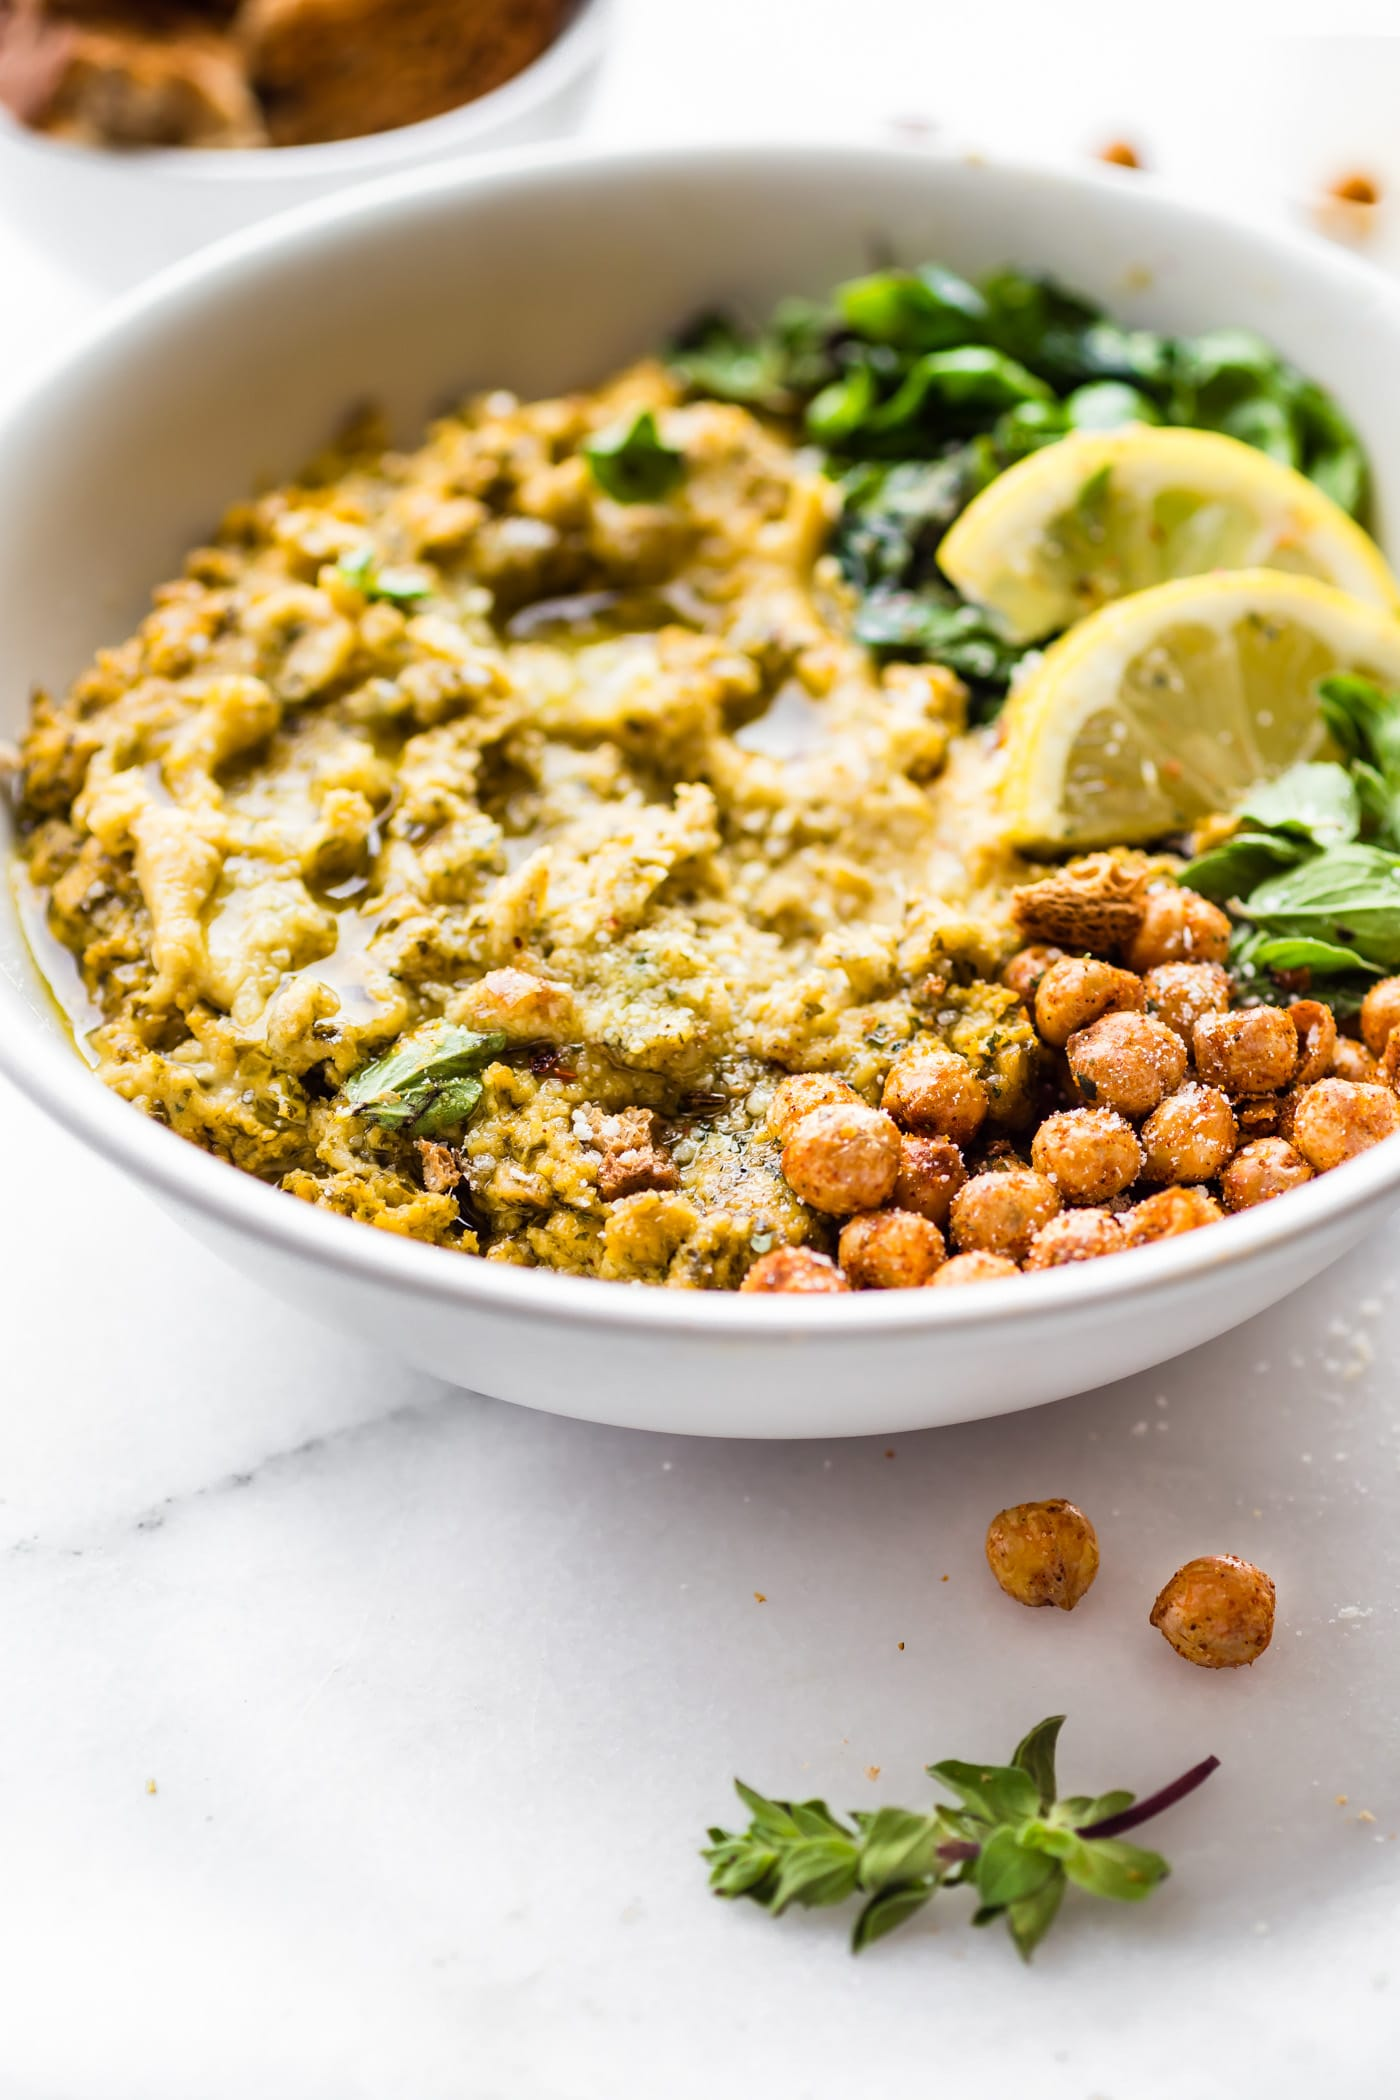 This Warm Mediterranean Spinach Artichoke Hummus Dip is a meal in itself. A vegetarian Mediterranean Baked Hummus Dip that's wholesome and healthy. Simple real food ingredients that you blend and bake! Gluten free, plant based, and delicious